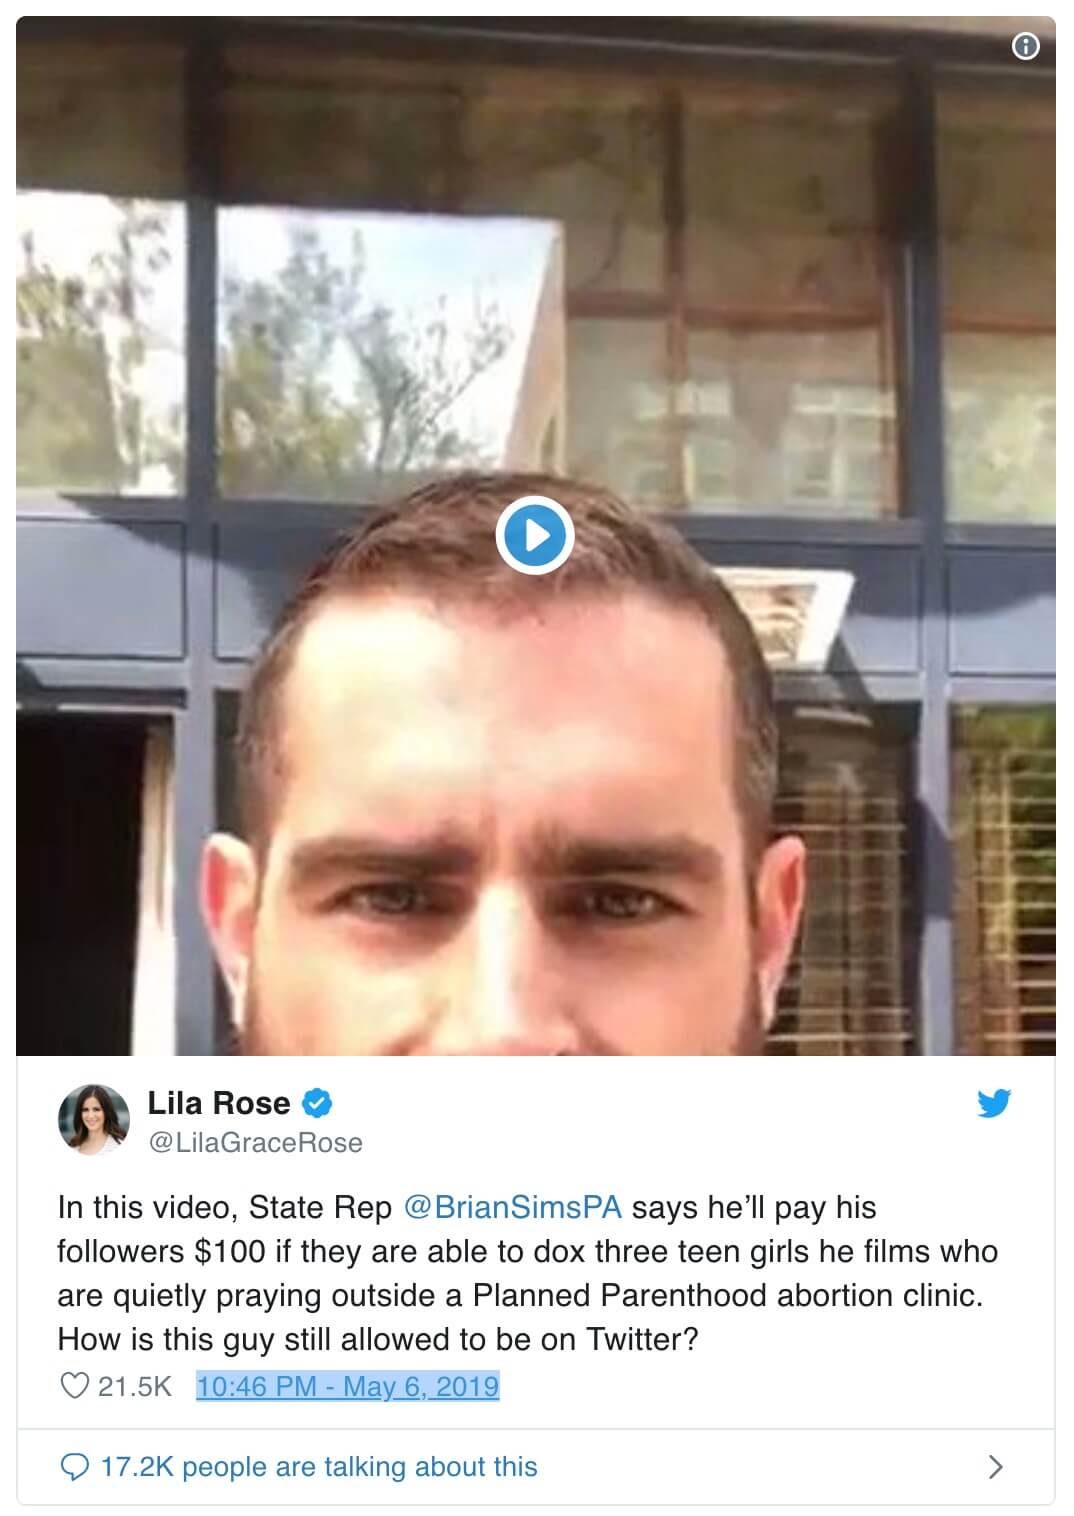 PA Representative Brian Sims's Twitter doxing attempt